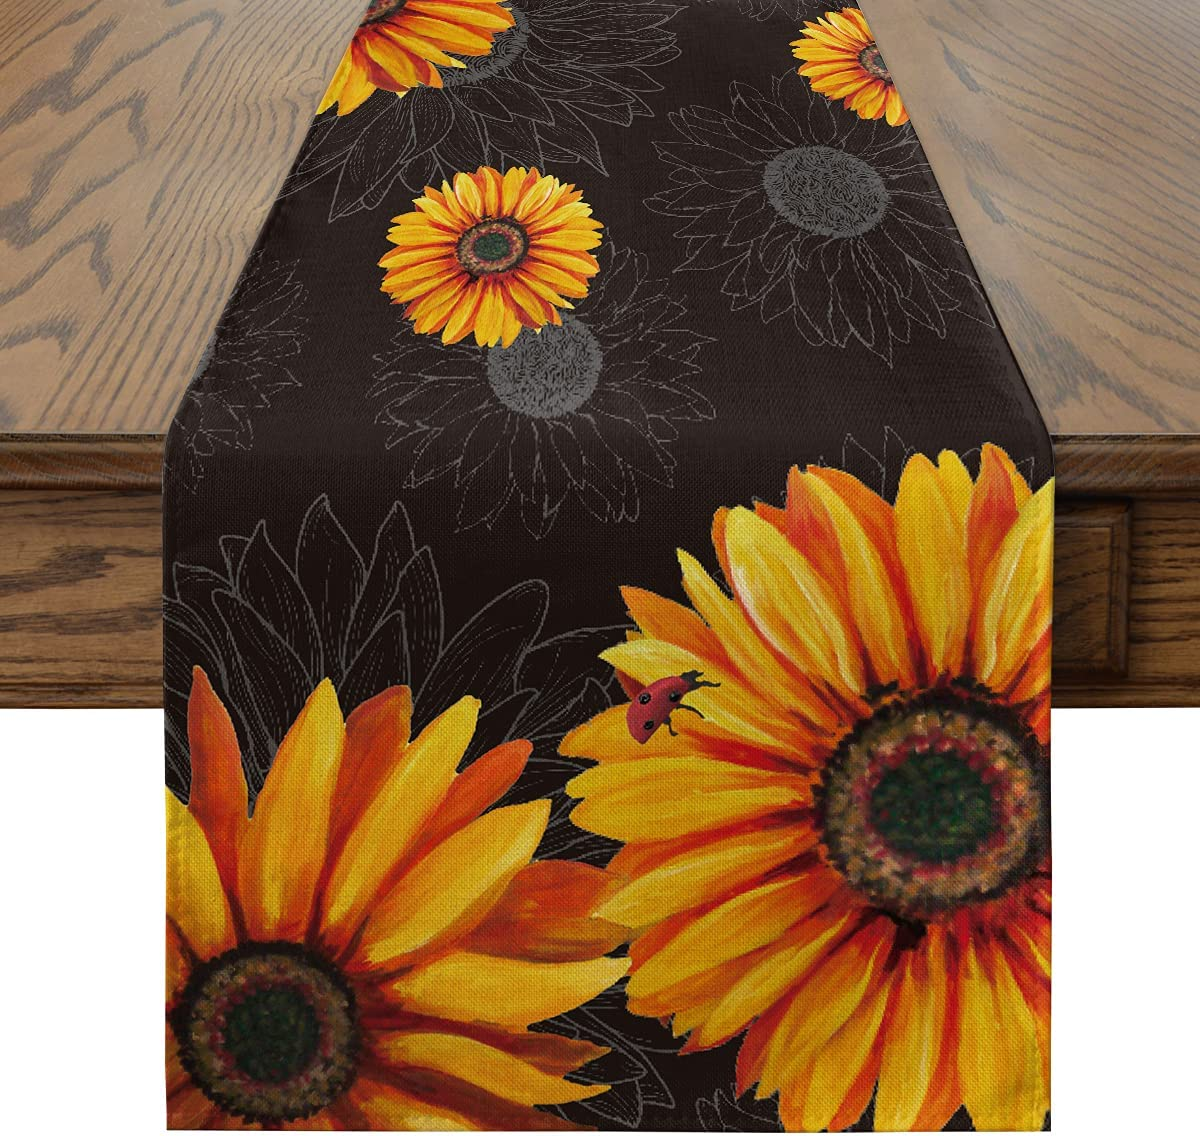 Artoid Mode Watercolor Sunflowers Ladybug Table Runner Black, Seasonal Fall Harvest Vintage Kitchen Dining Table Decoration for Indoor Outdoor Home Party Decor 13 x 72 Inch